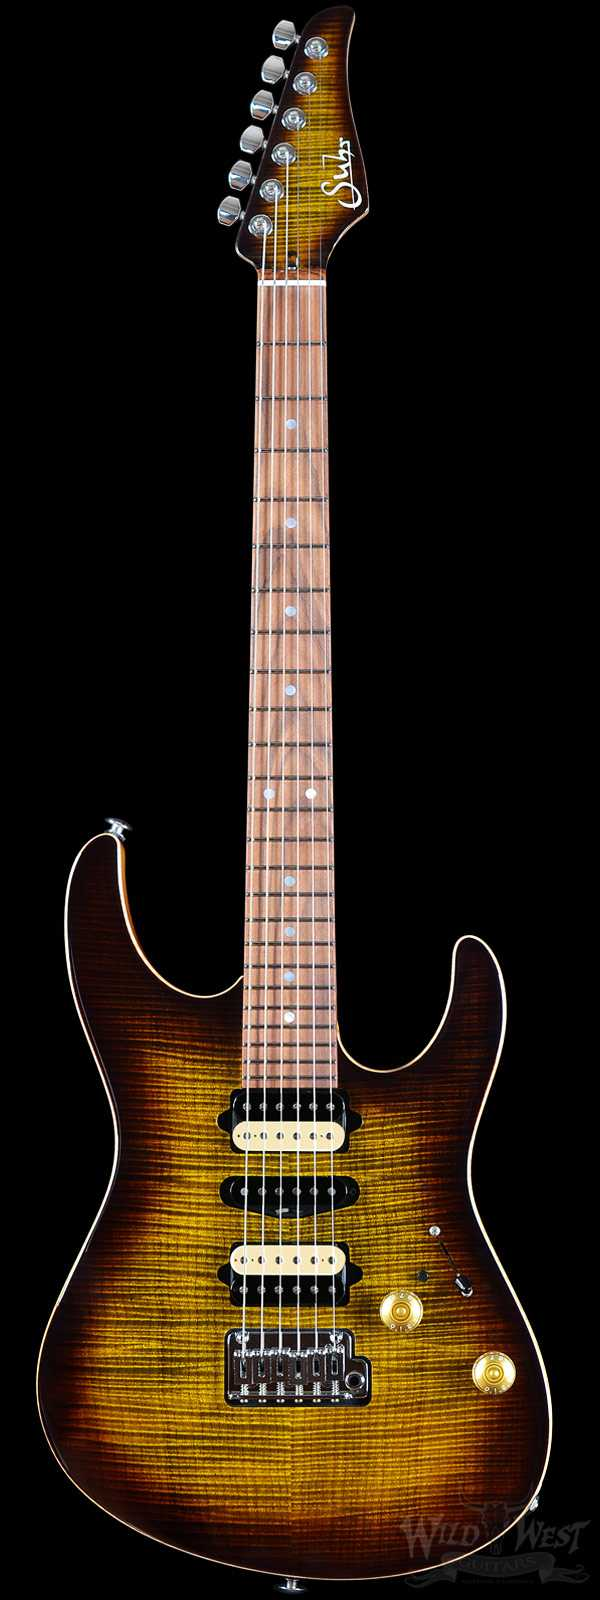 Suhr Custom Modern Bengal Burst Flame Maple Top